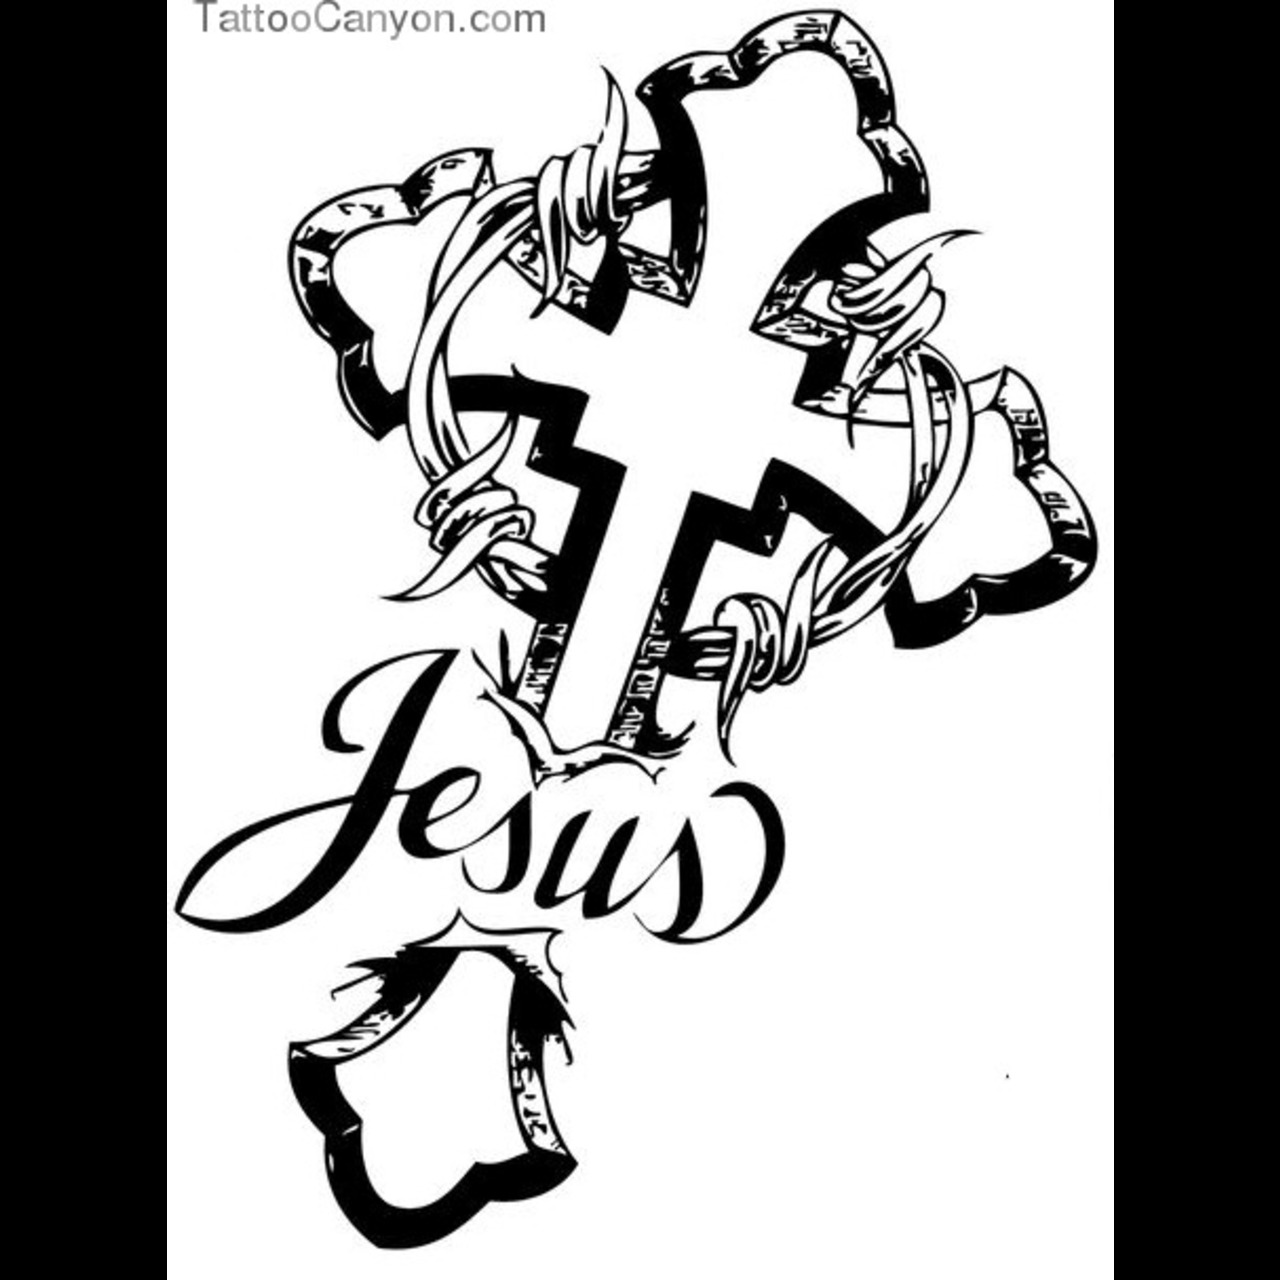 Jesus Cross And Barbed Wire Tattoo Design